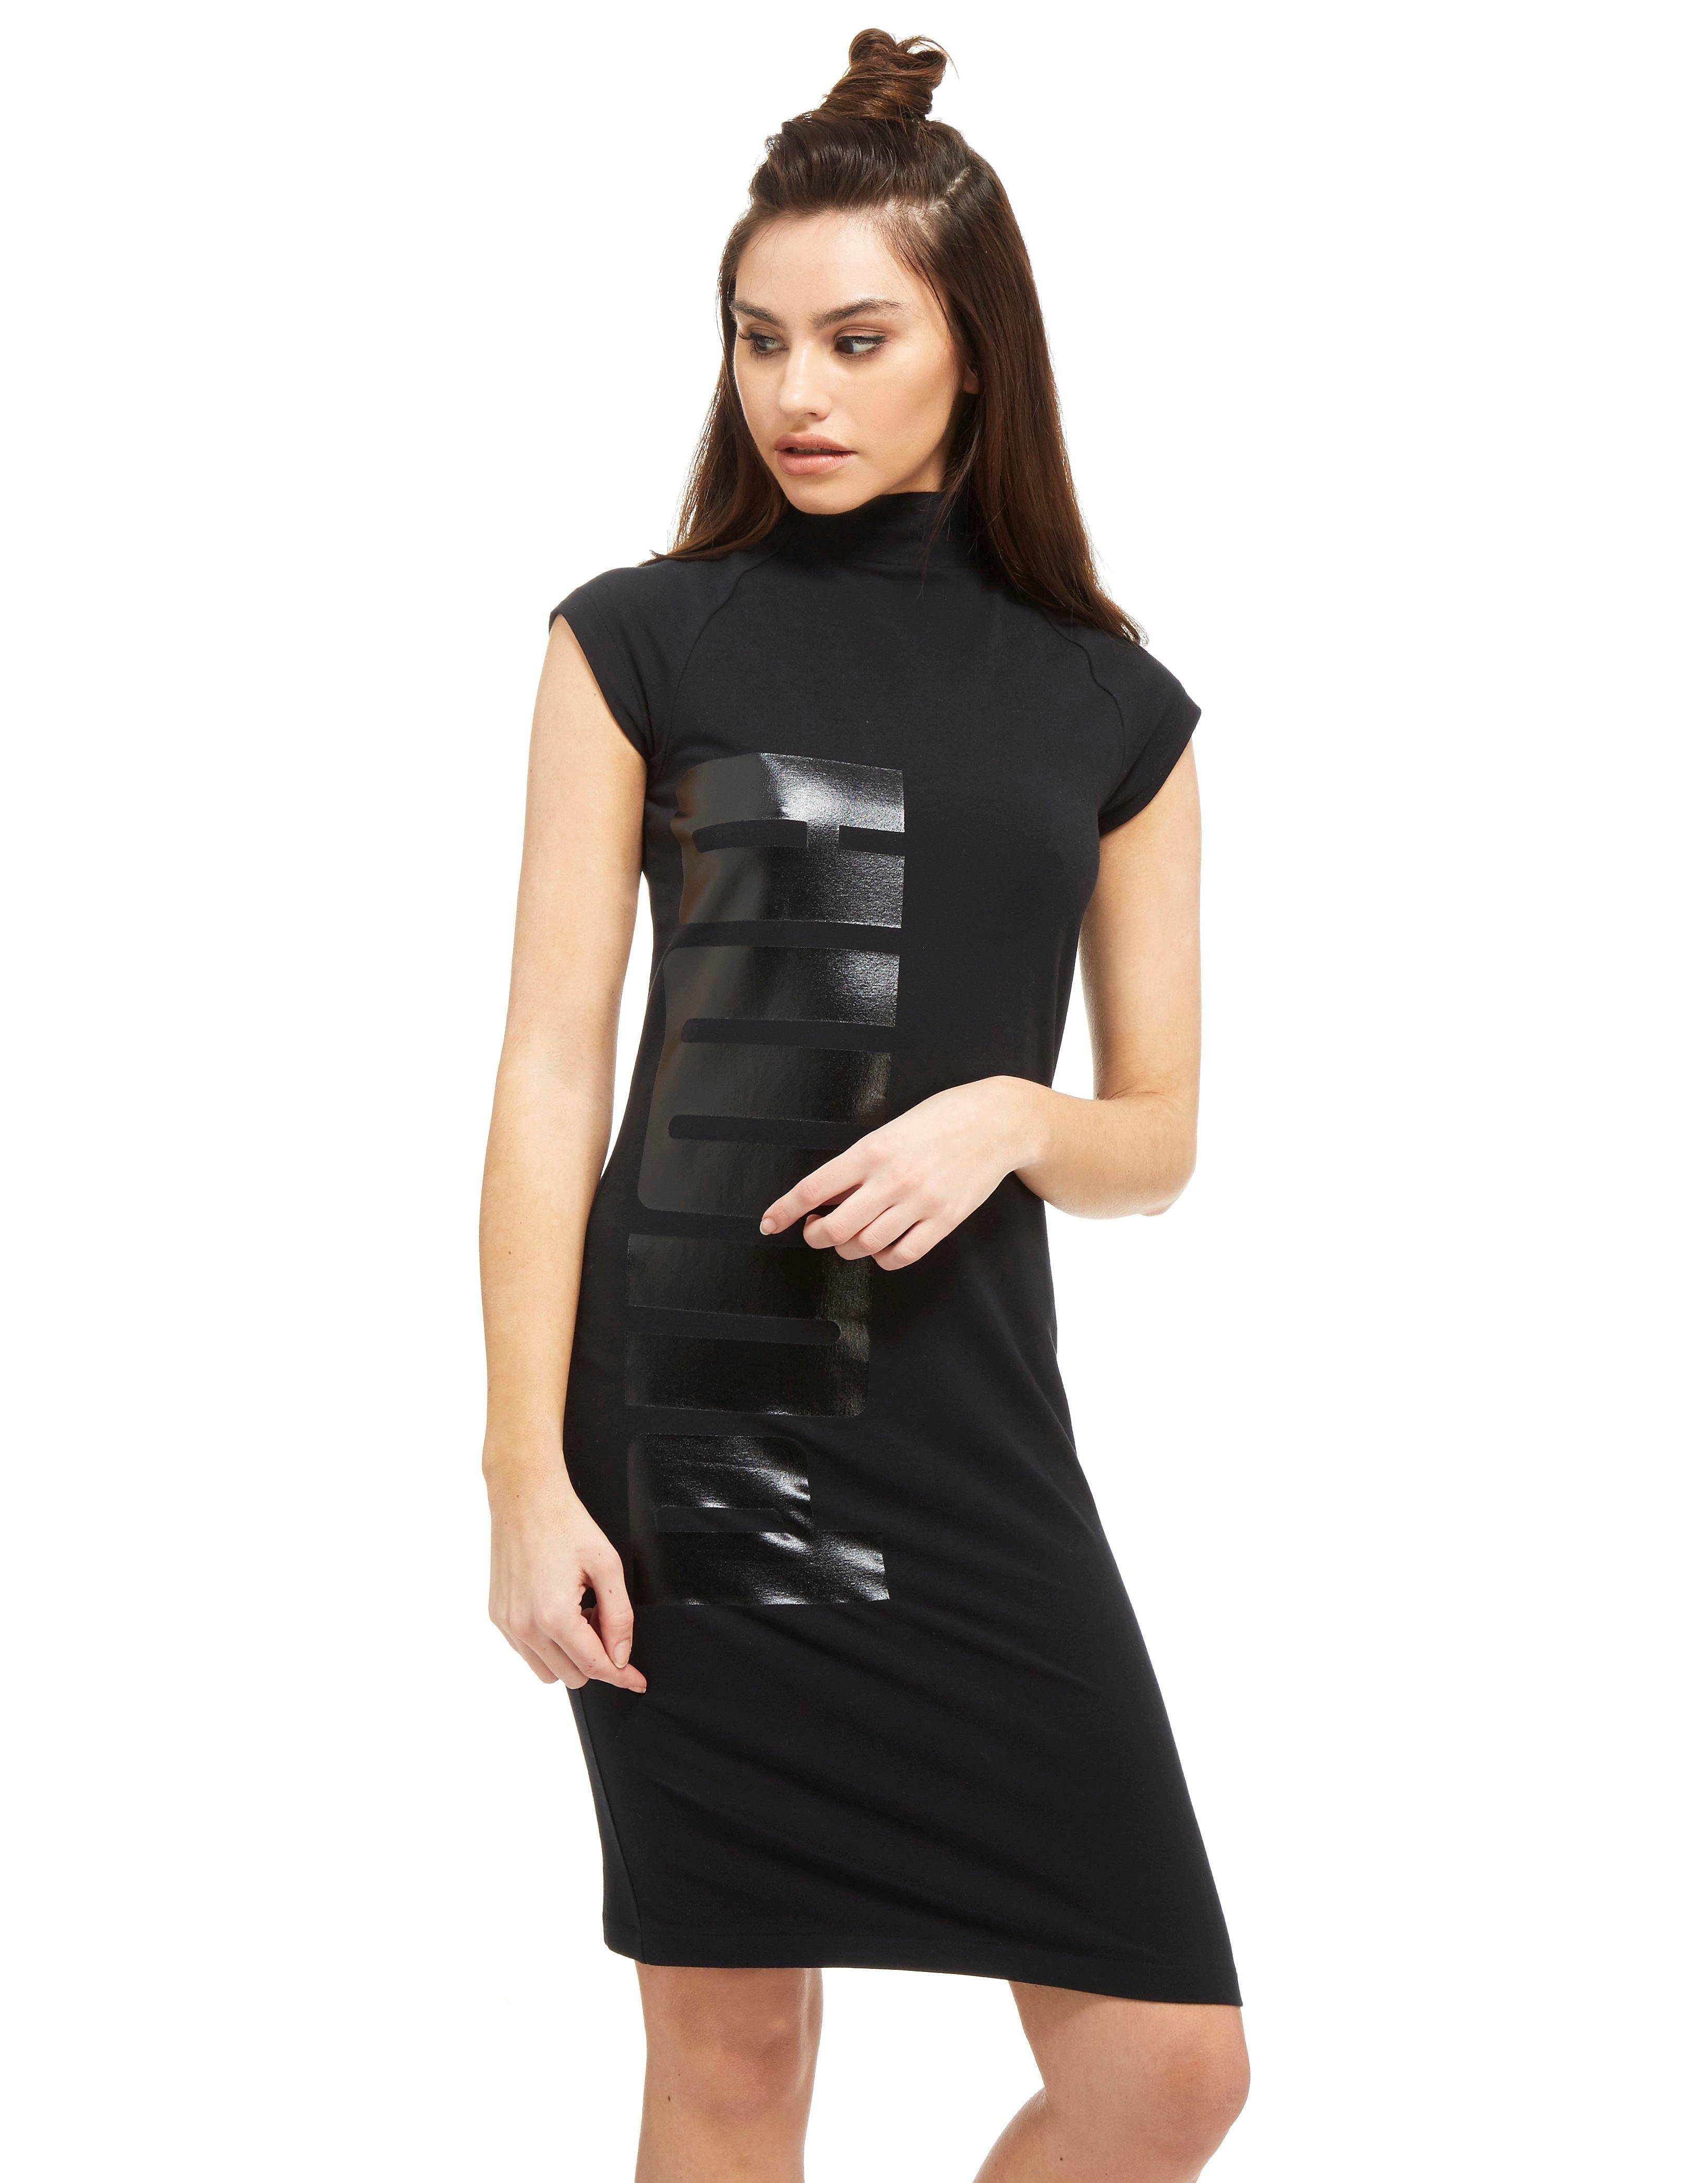 PUMA High Neck Dress